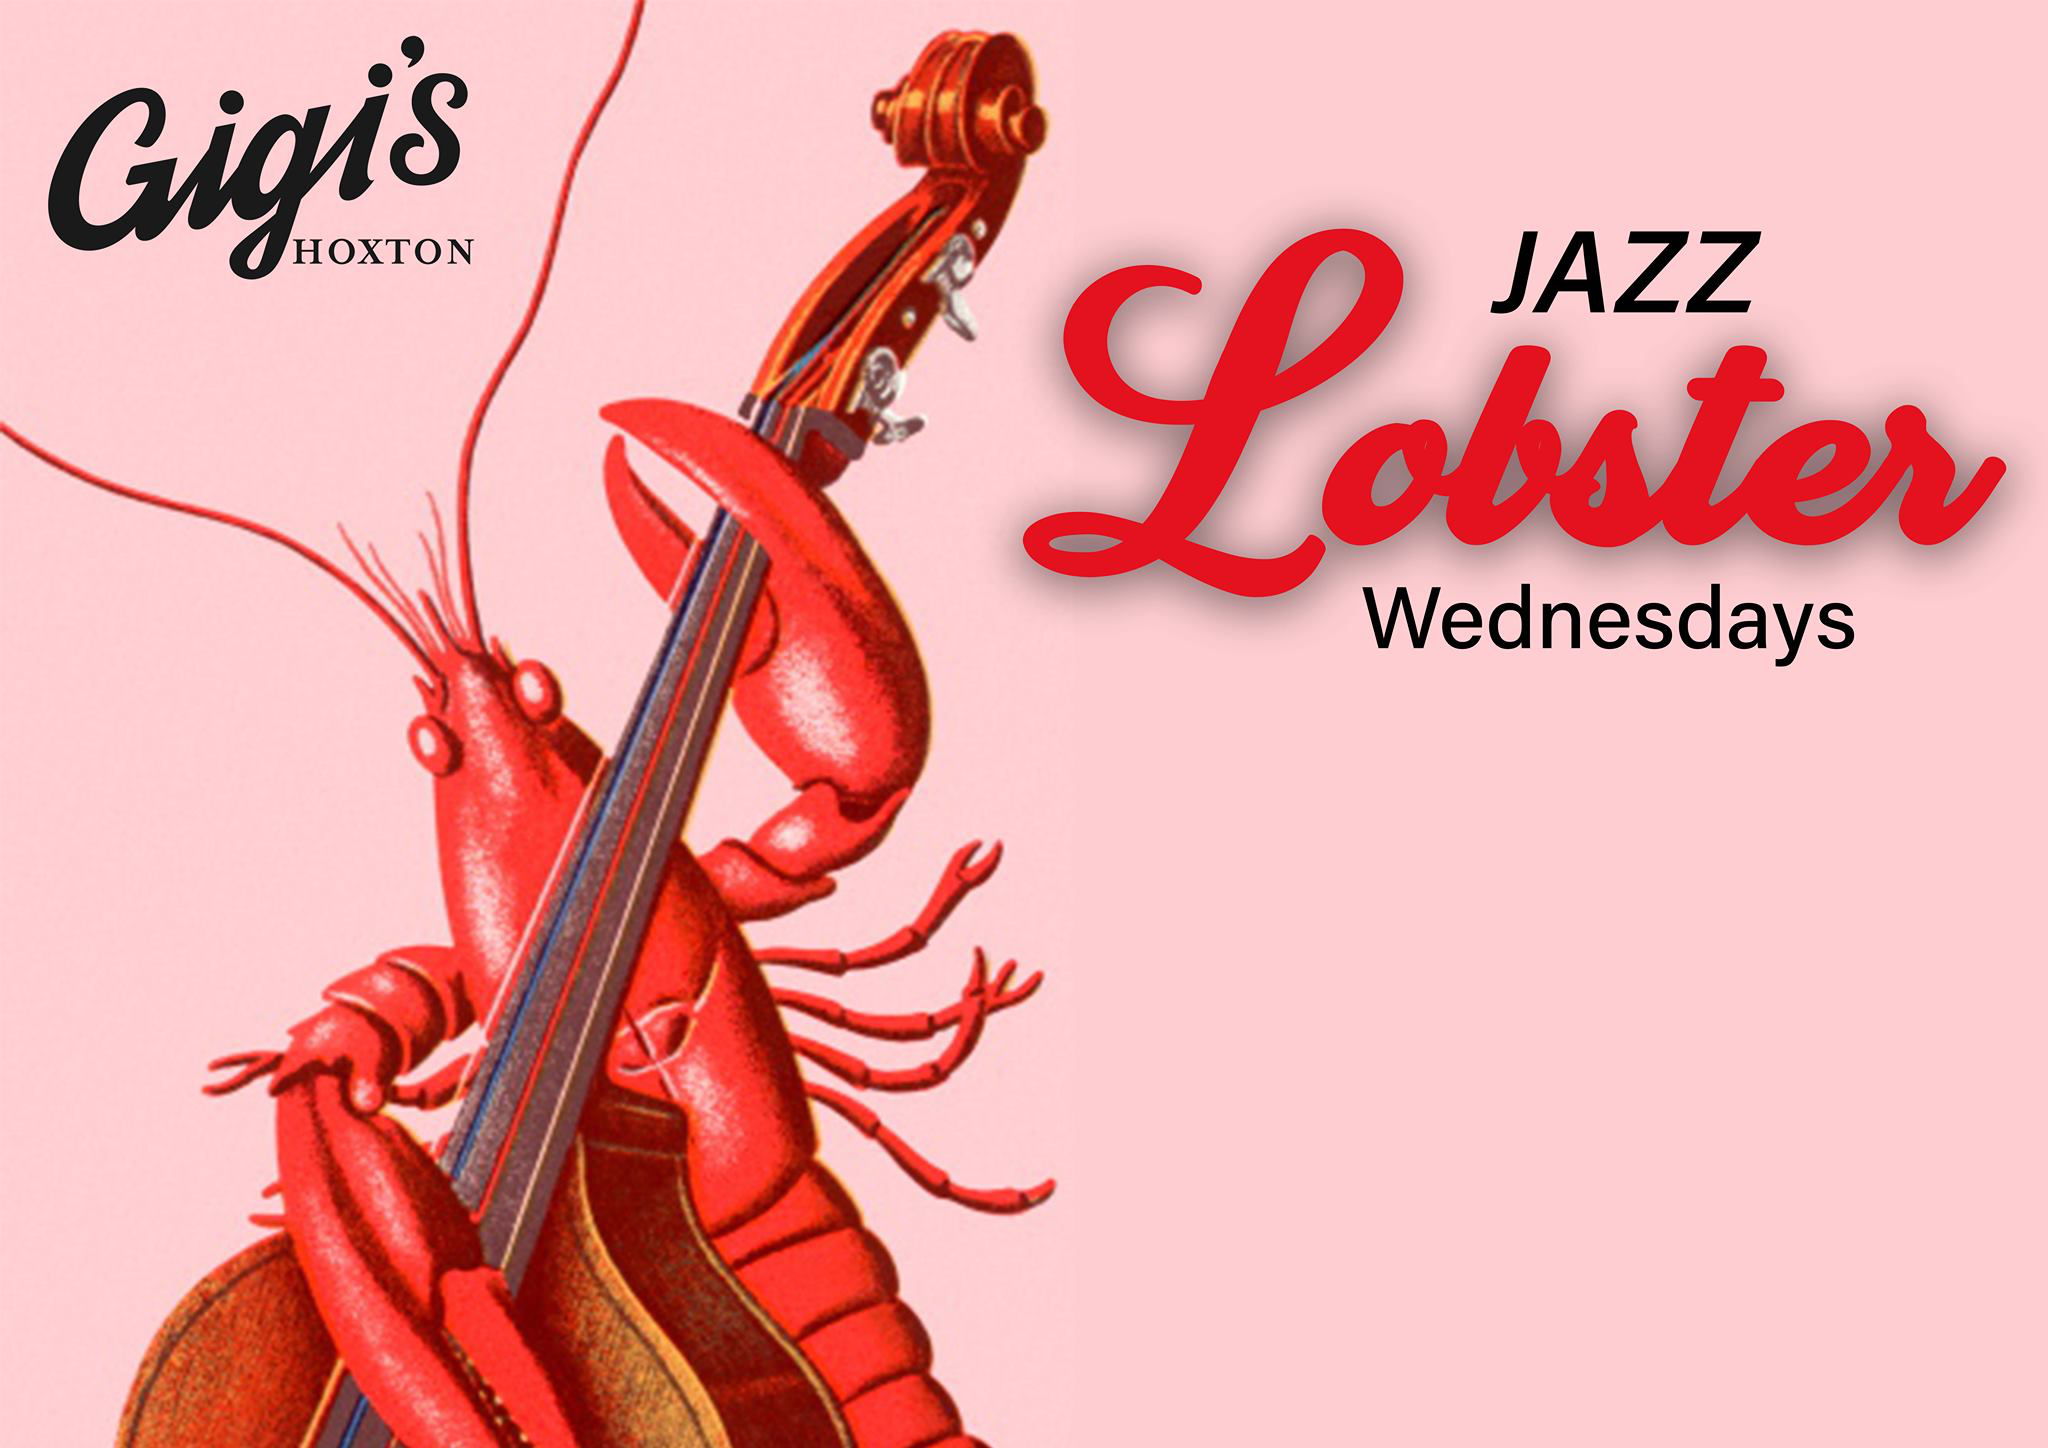 Hoxton Bar, Jazz Lobster